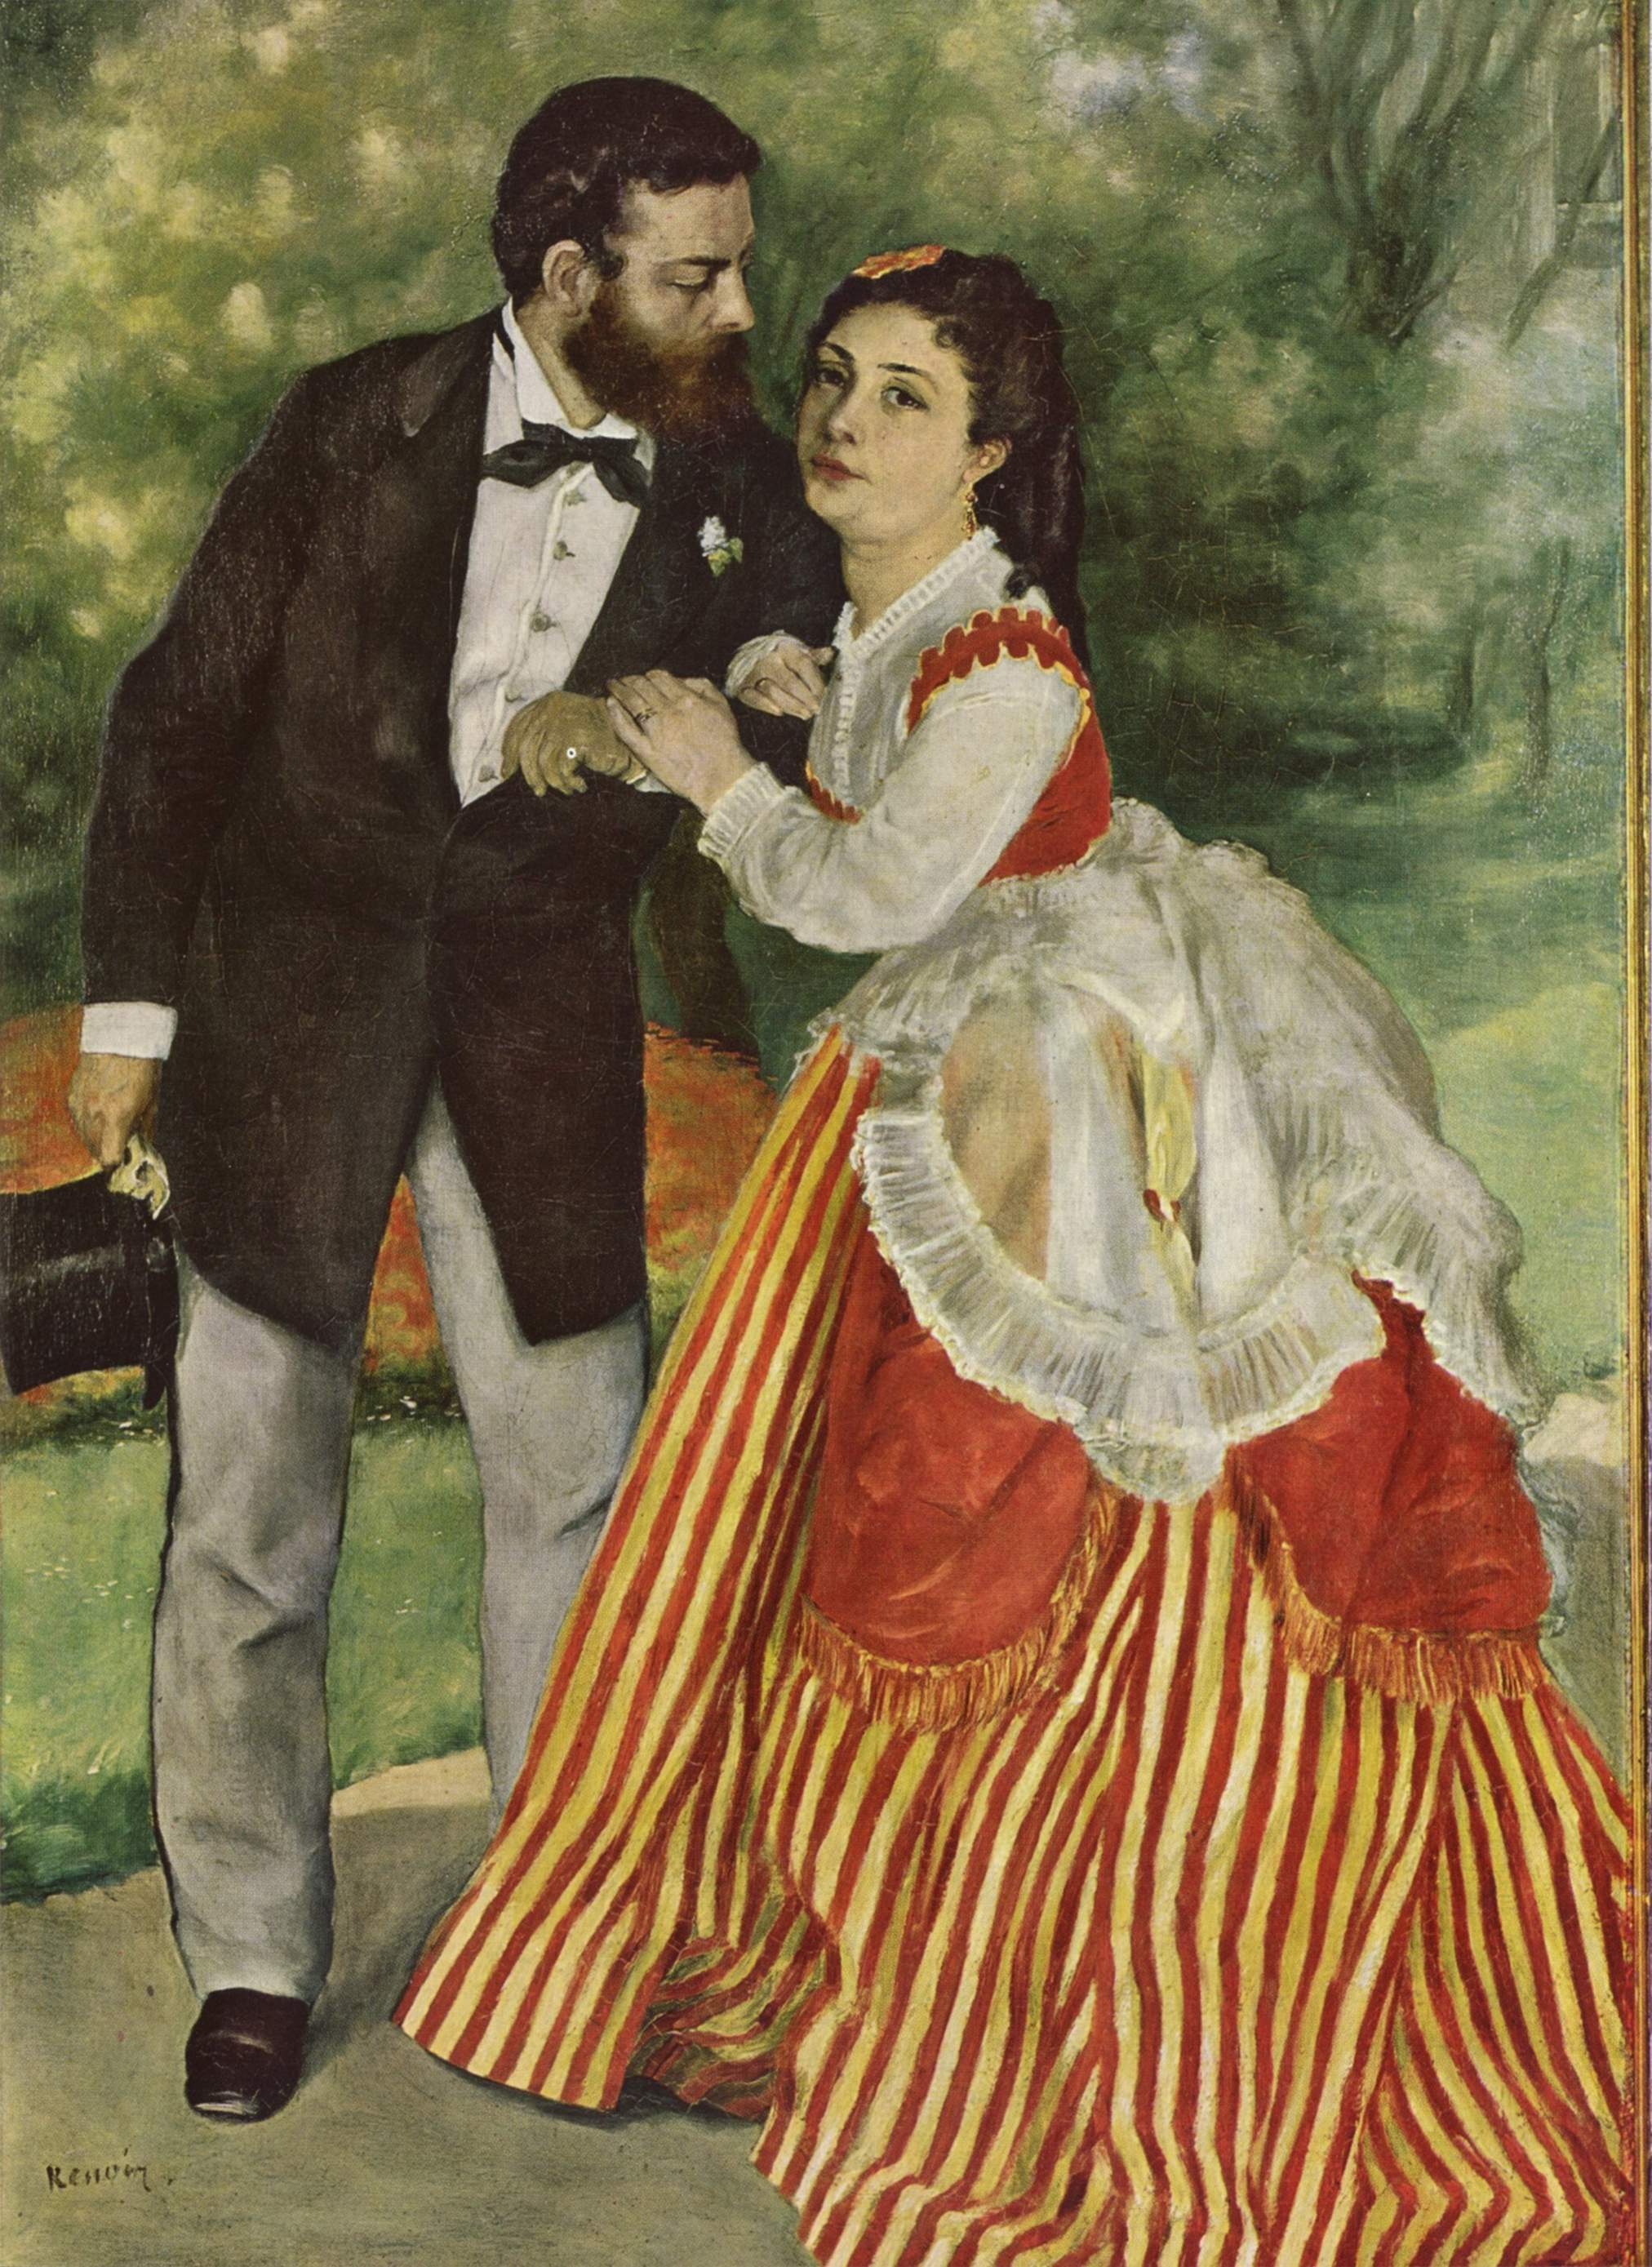 Portrait of the couple Sisley 75x105cm Wallraf-Richartz Museum, Cologne, Germany